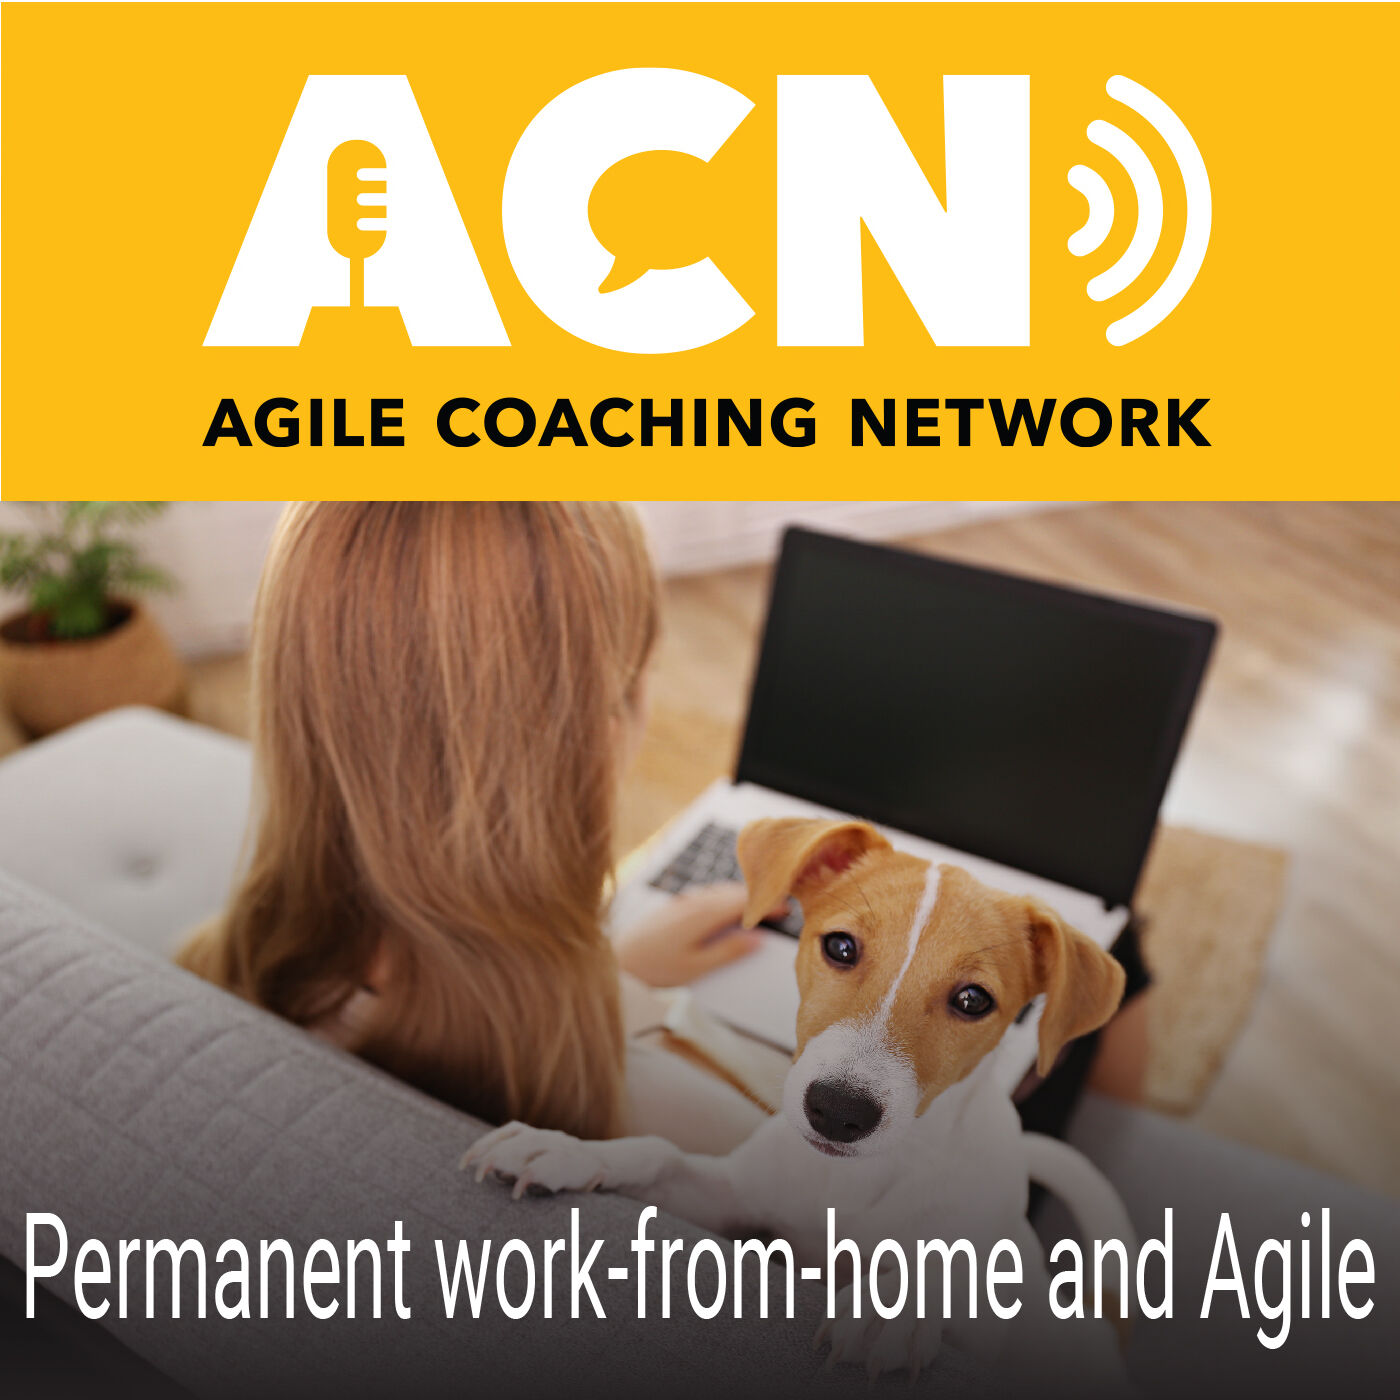 Permanent work-from-home and Agile, and resources for business and leadership agility